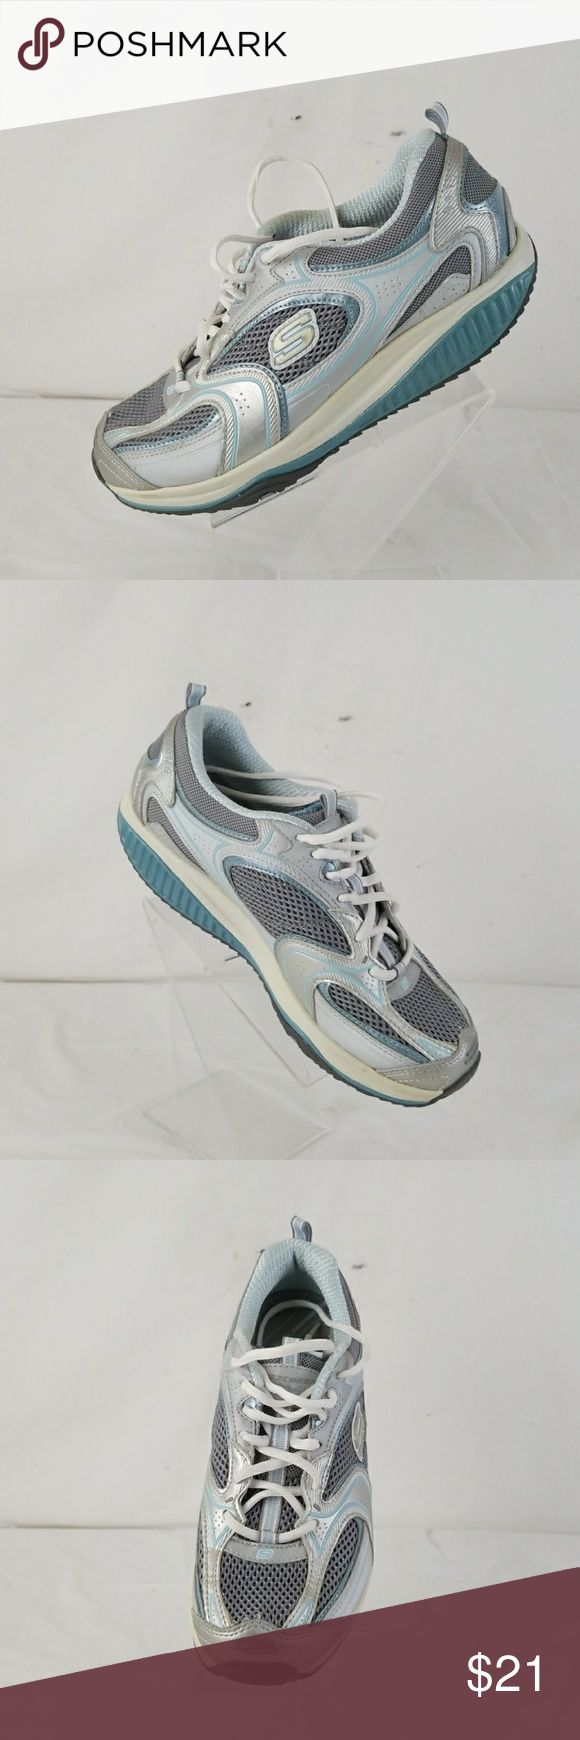 Skechers shape up women's athletic shoes size 8.5 pre owned women's skechers shape up athletic shoes size 8.5. in great condition Skechers Shoes Athletic Shoes